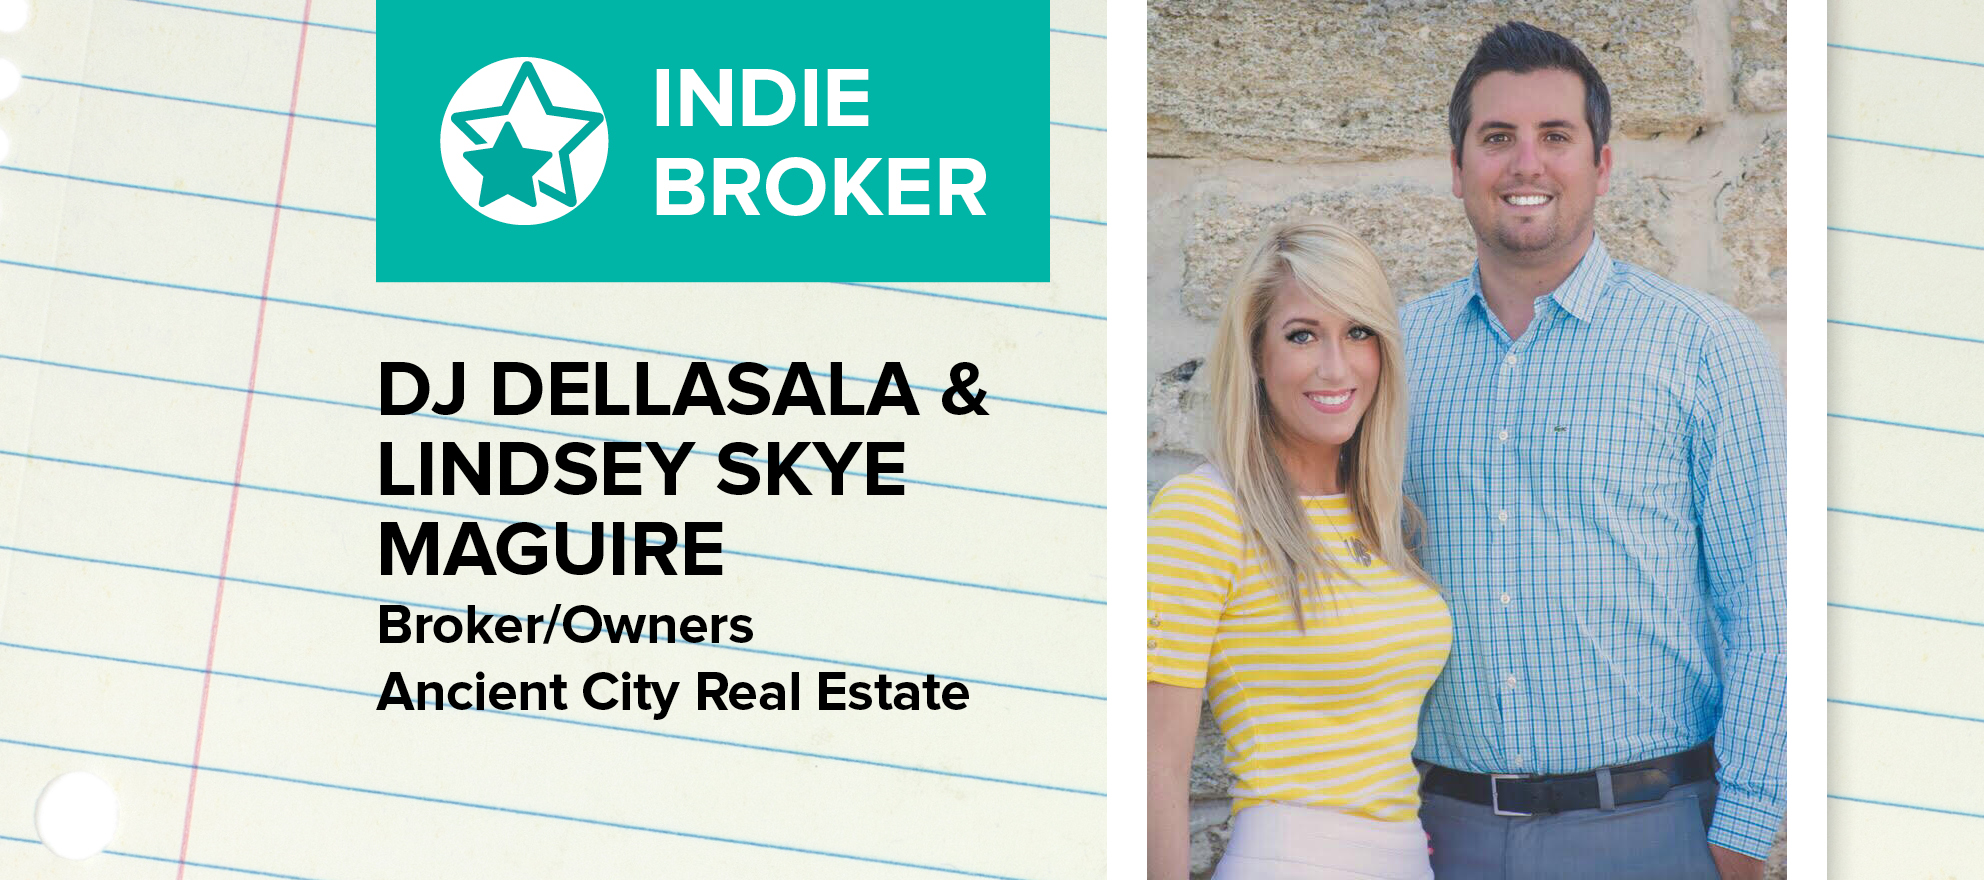 DJ DellaSala and Lindsey Skye Maguire: 'Being under a corporate franchise wasn't adding to our business'